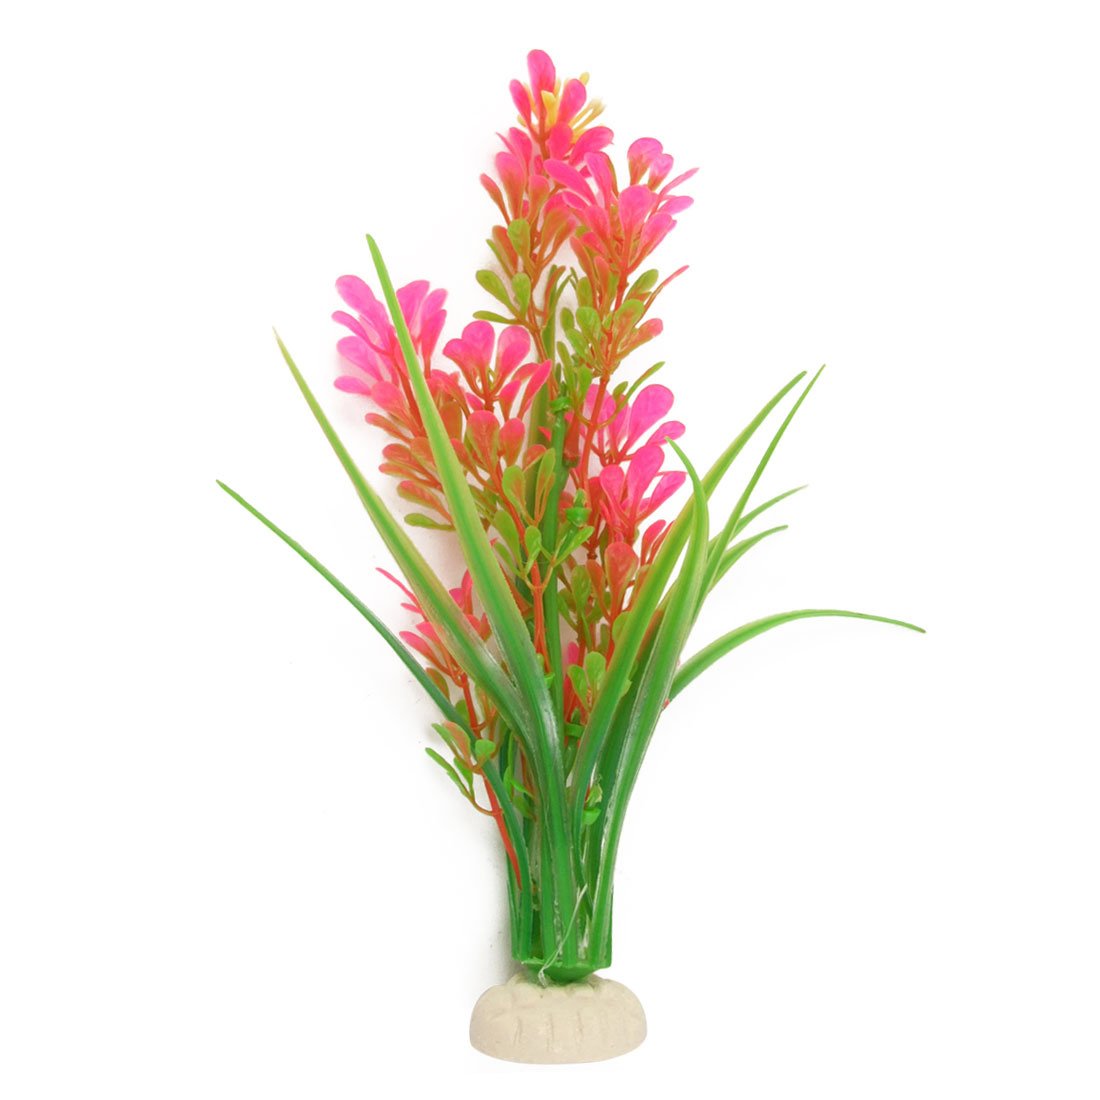 Aquarium Soft Plastic Green Amaranth Pink Plant Decor w Base